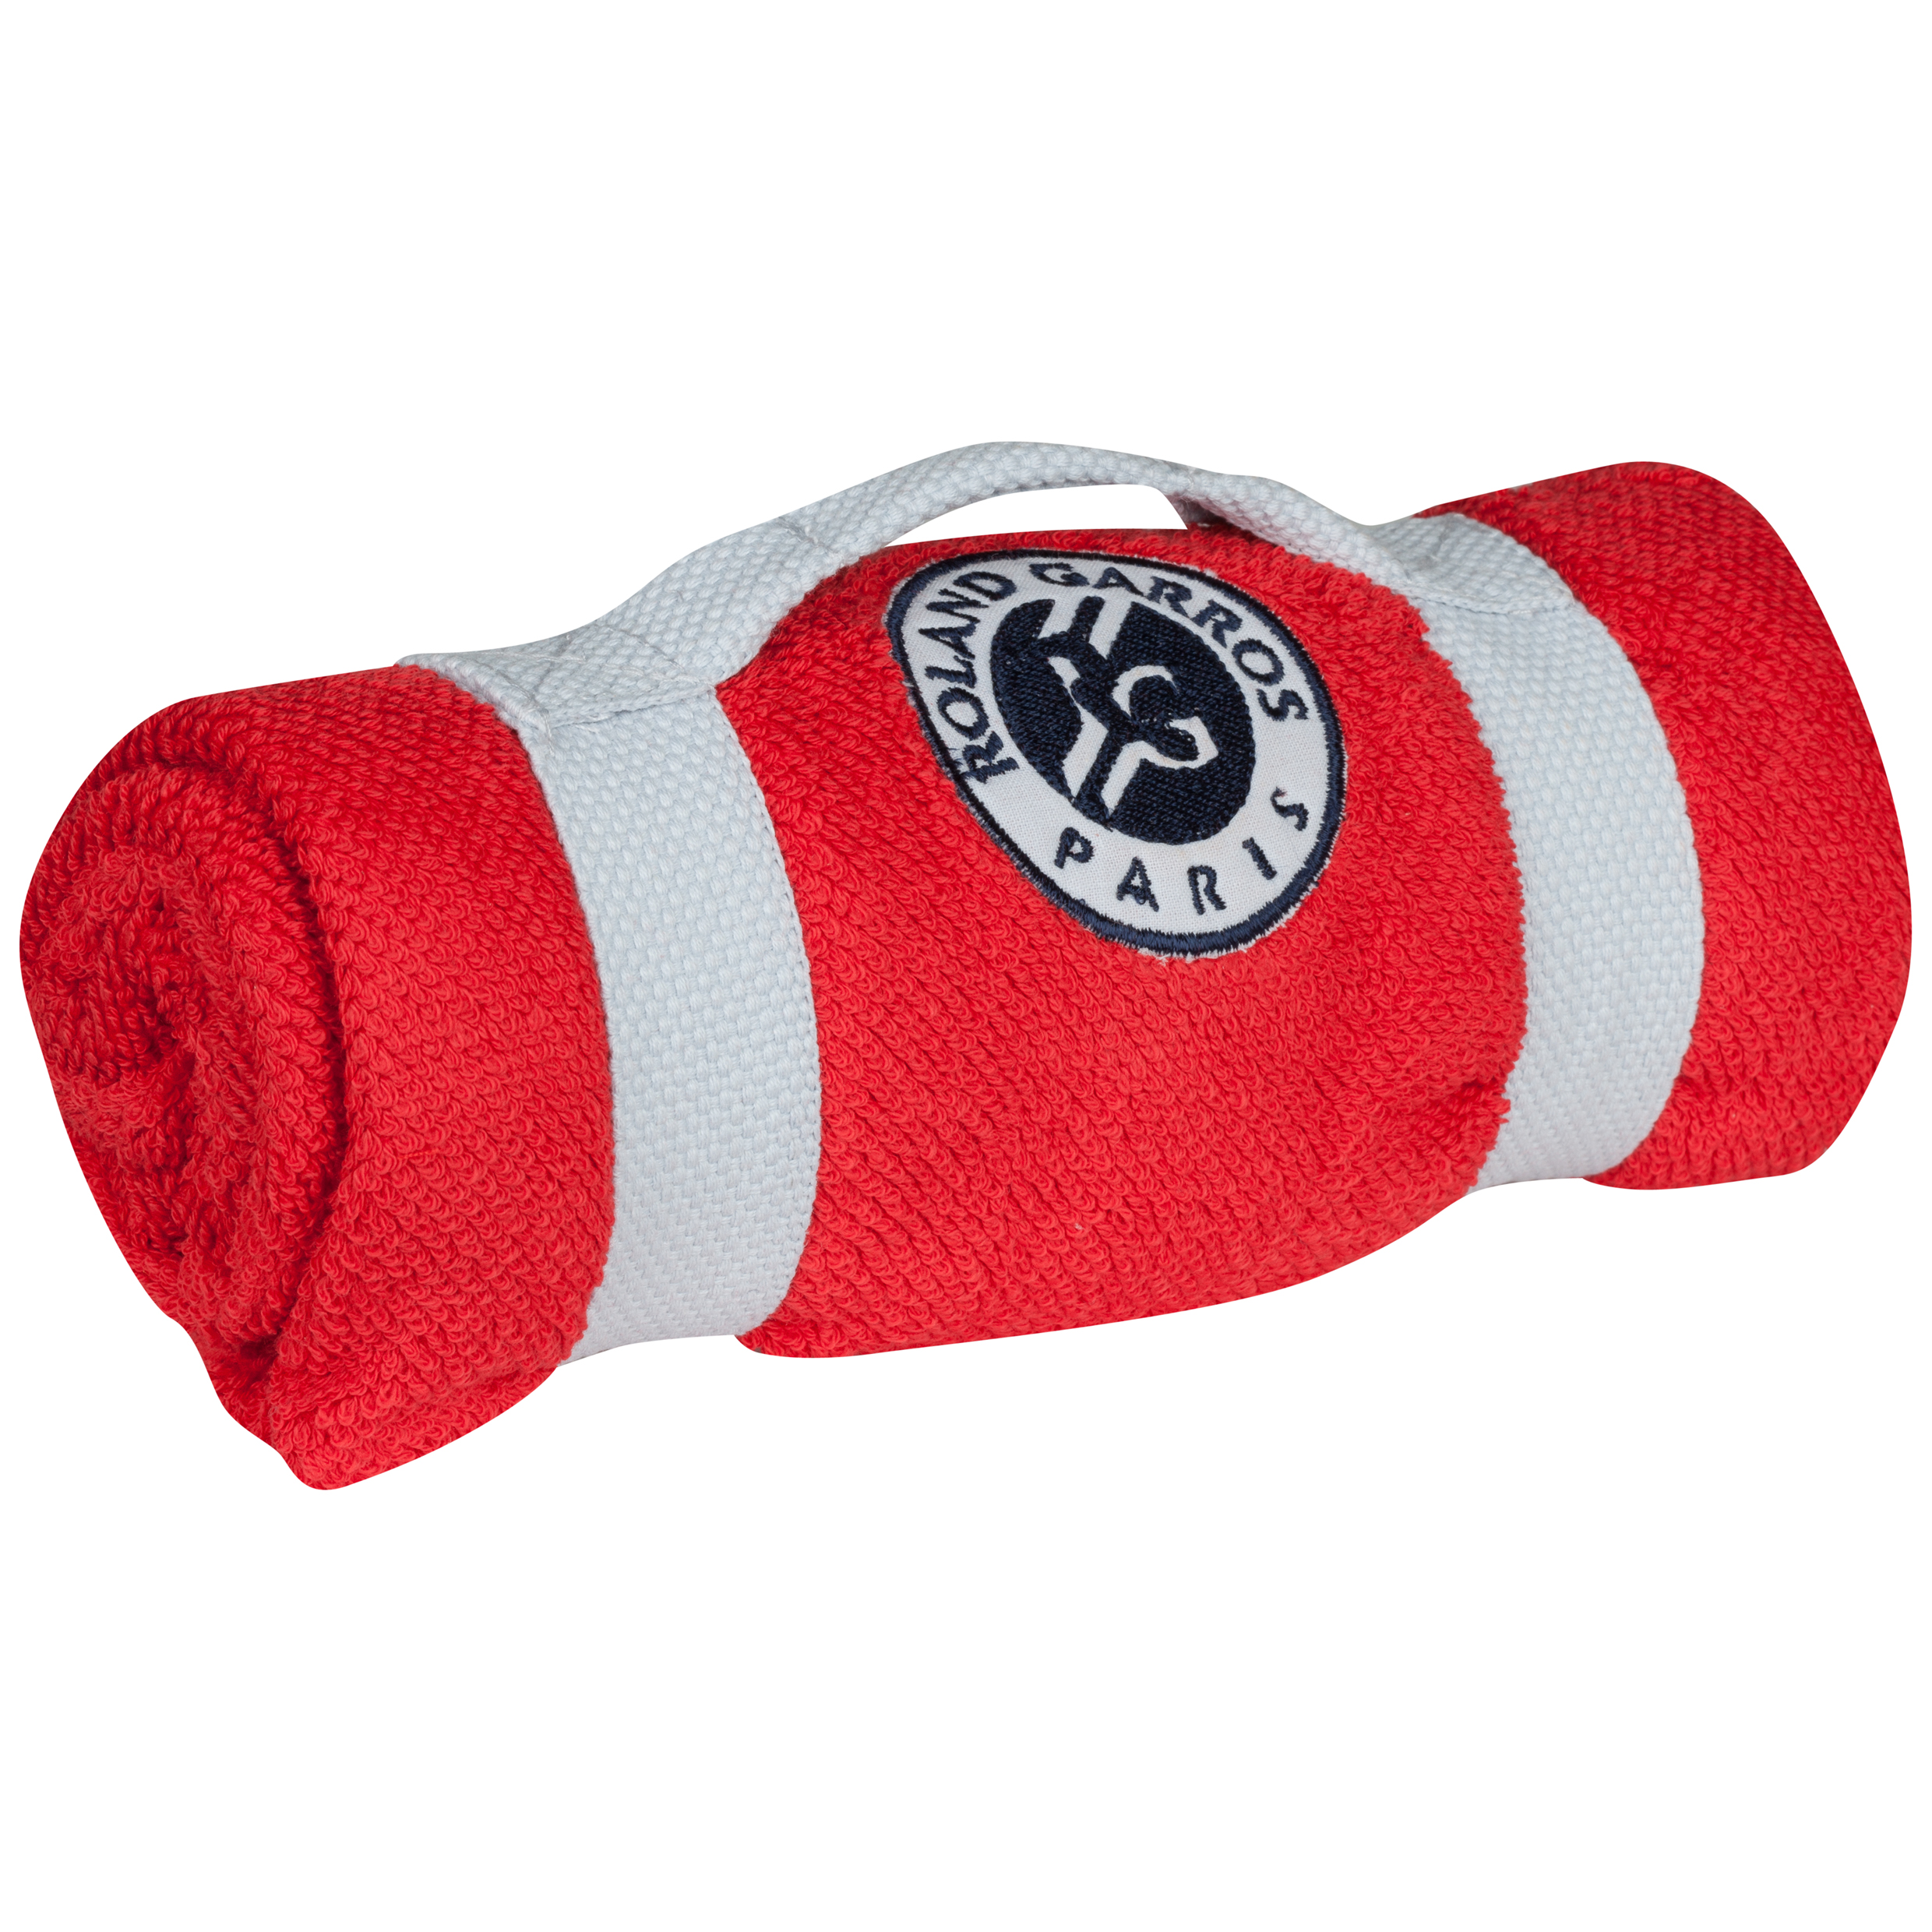 Roland-Garros Towel With Carry Strap - Red